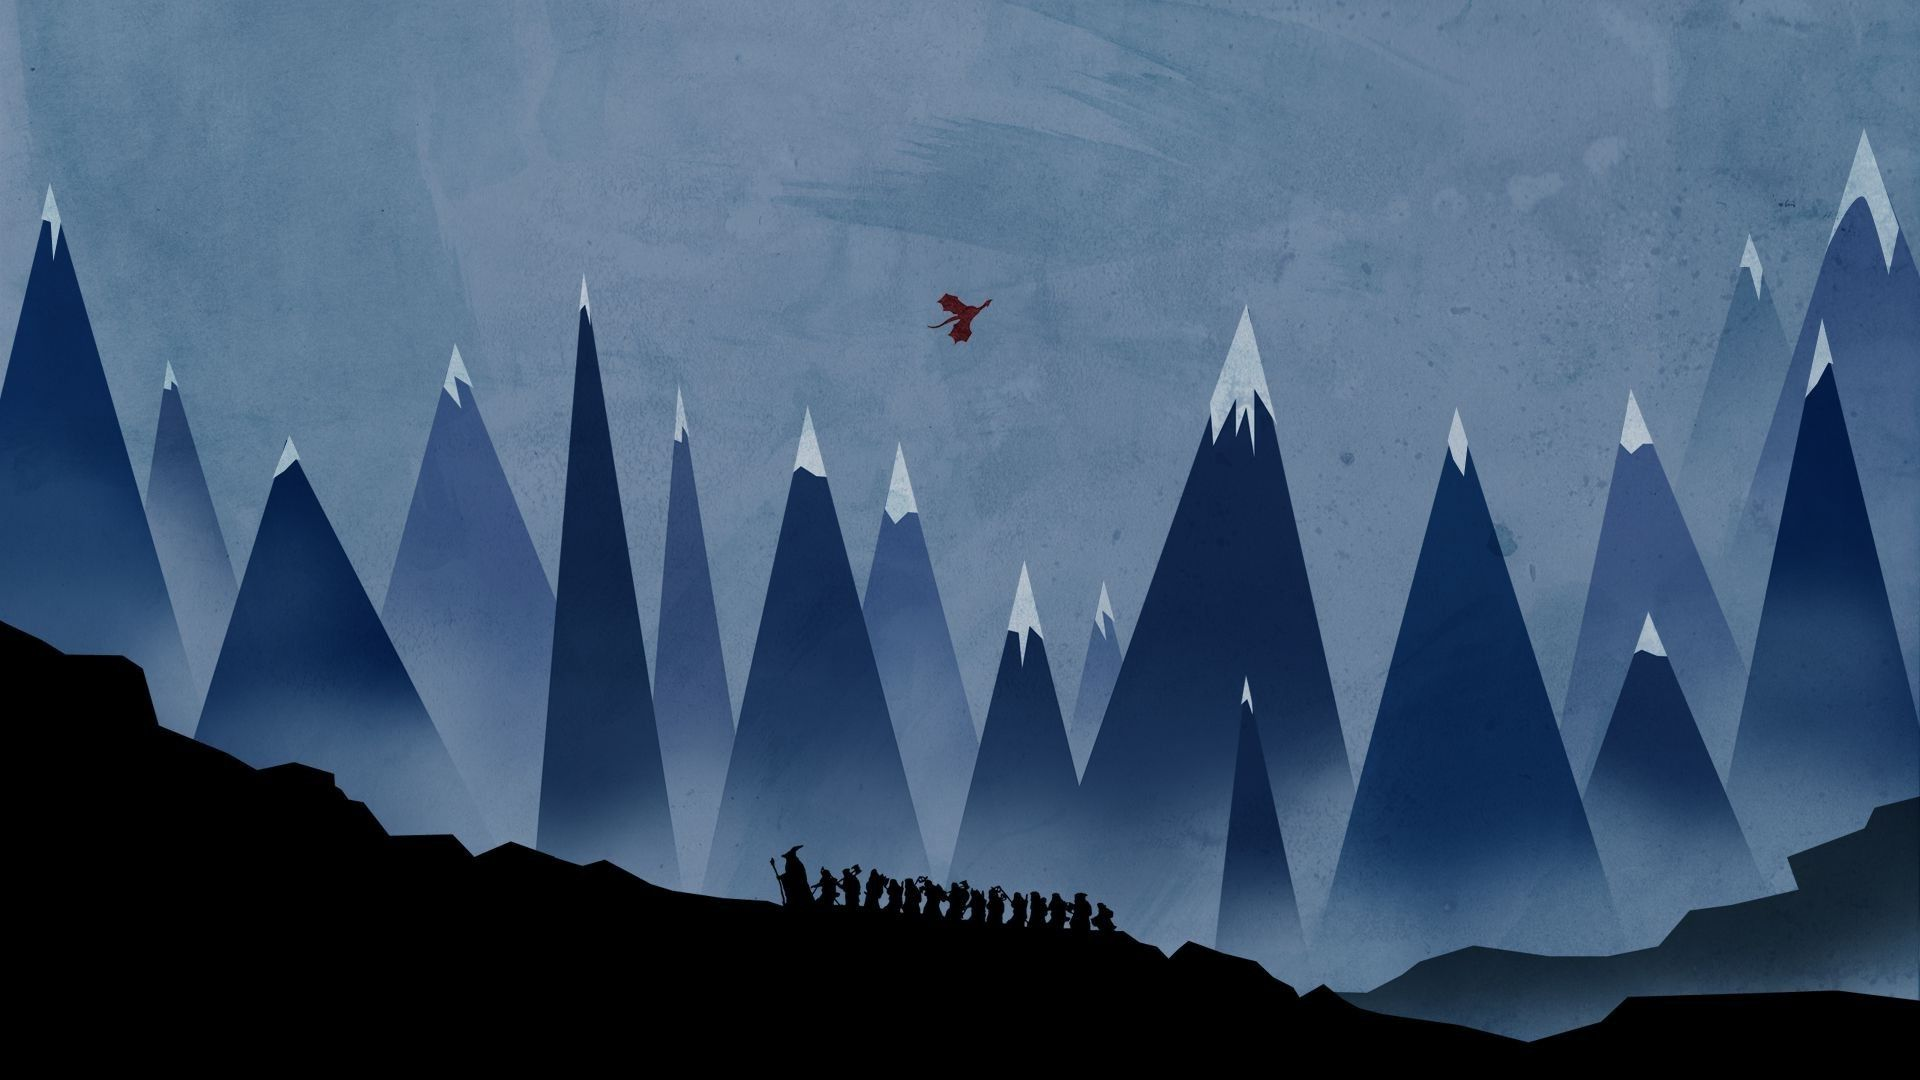 Pin By 乃楨 林 On Middle Earth The Hobbit Minimalist Wallpaper Hobbit An Unexpected Journey